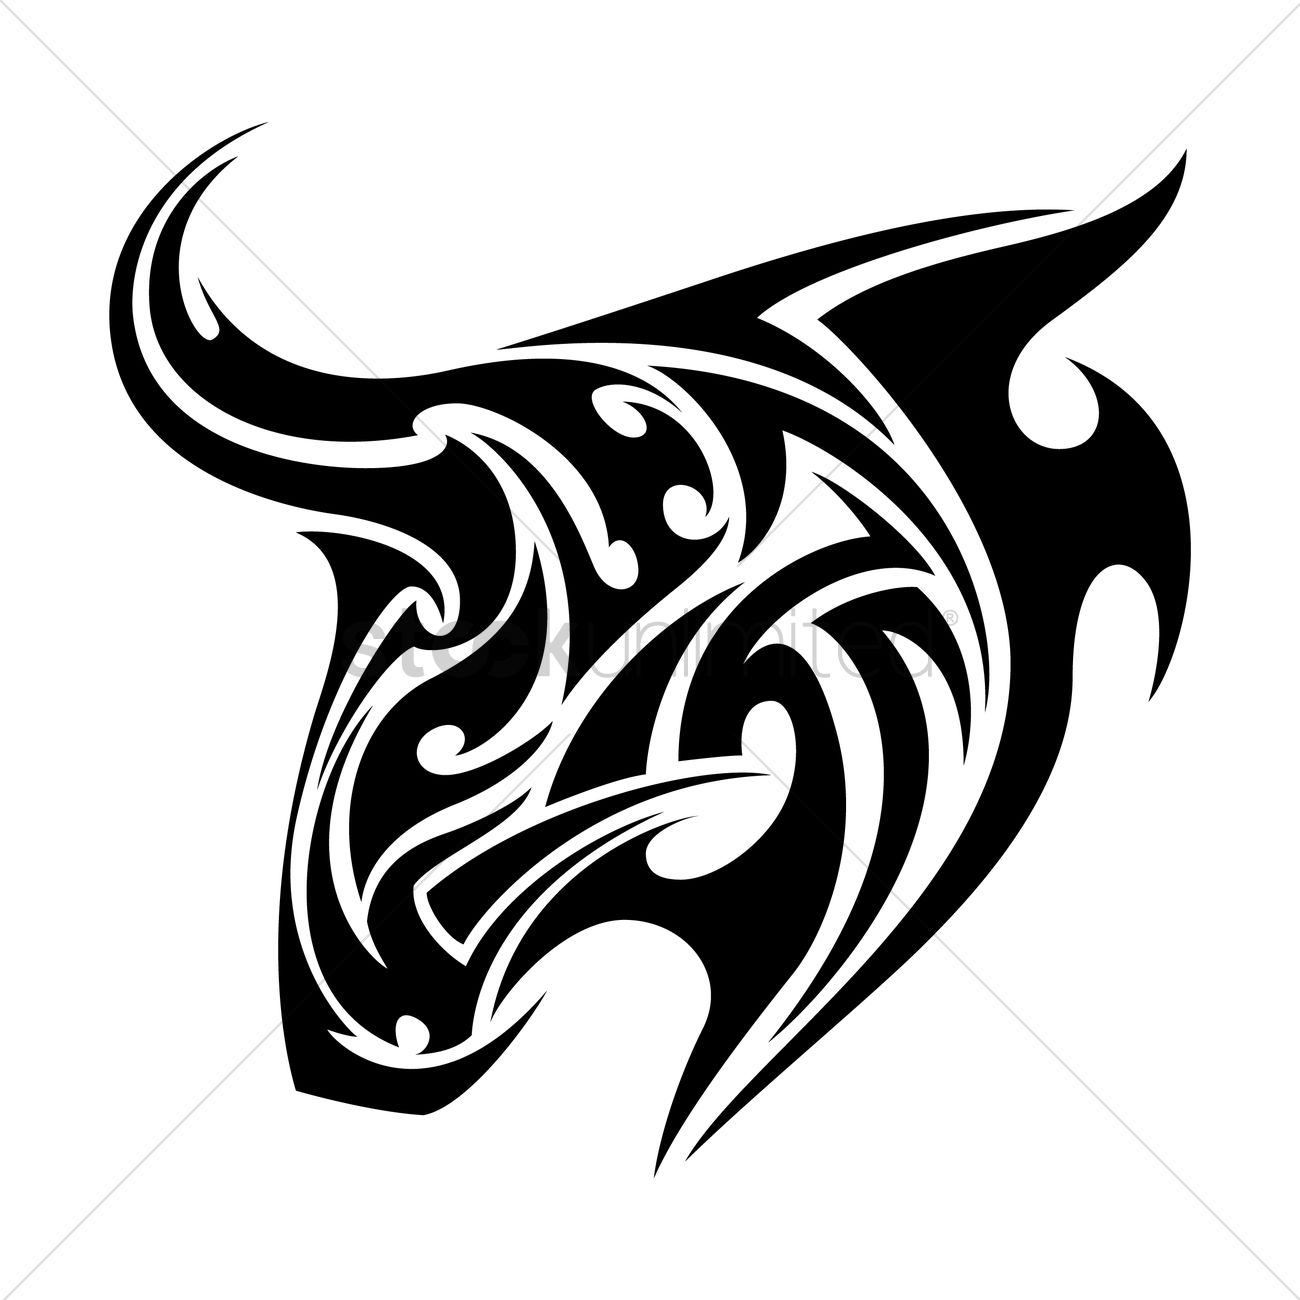 Bull Tattoo Vector Image 1441392 Stockunlimited